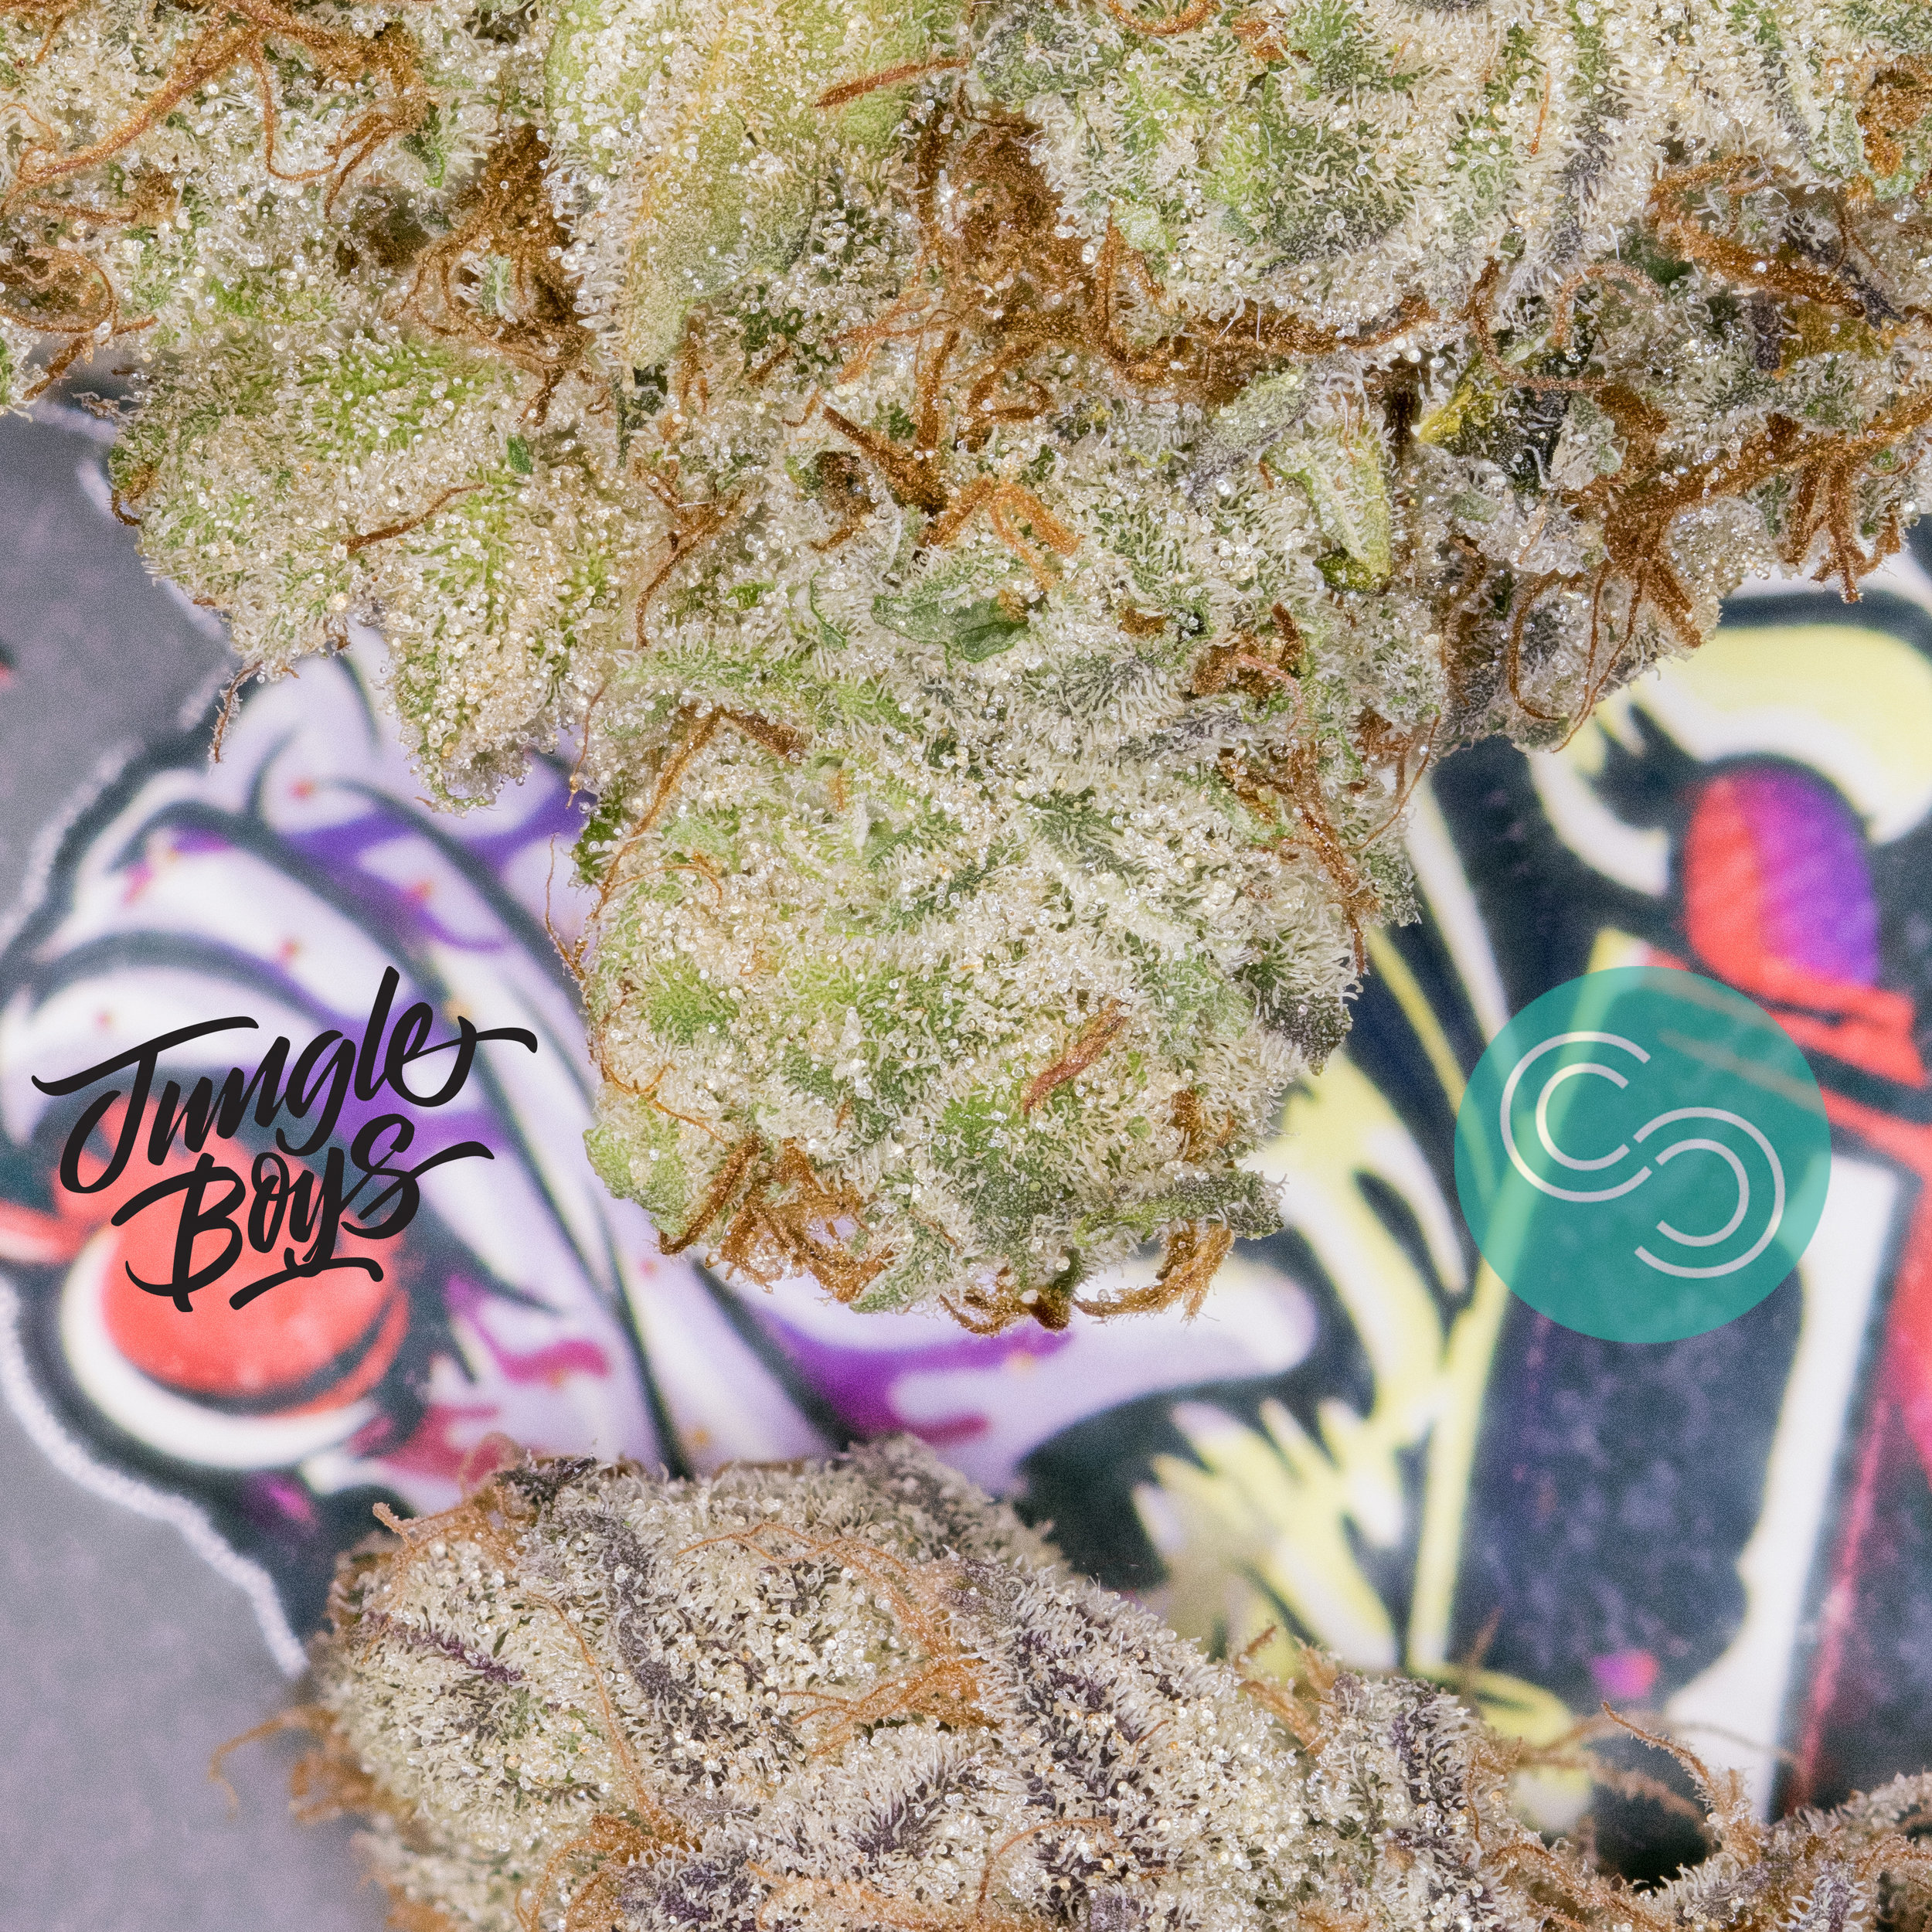 Sundae Driver phenotype #8. Each phenotype has its own respective variation of flavor & medicinal properties.